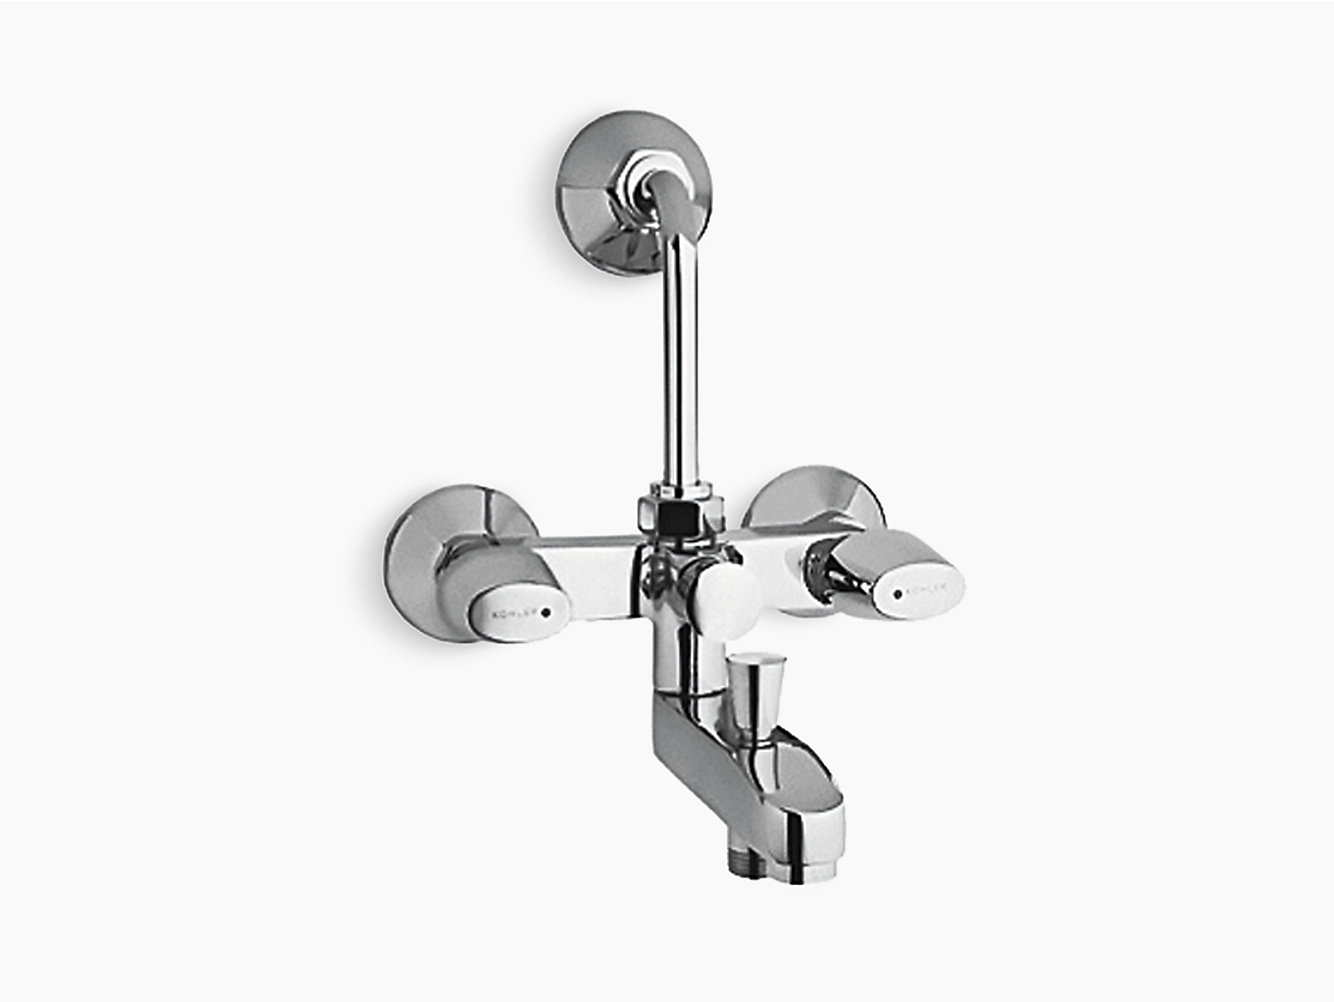 Sirocco Exposed bath and shower faucet with diverter for showerhead ...